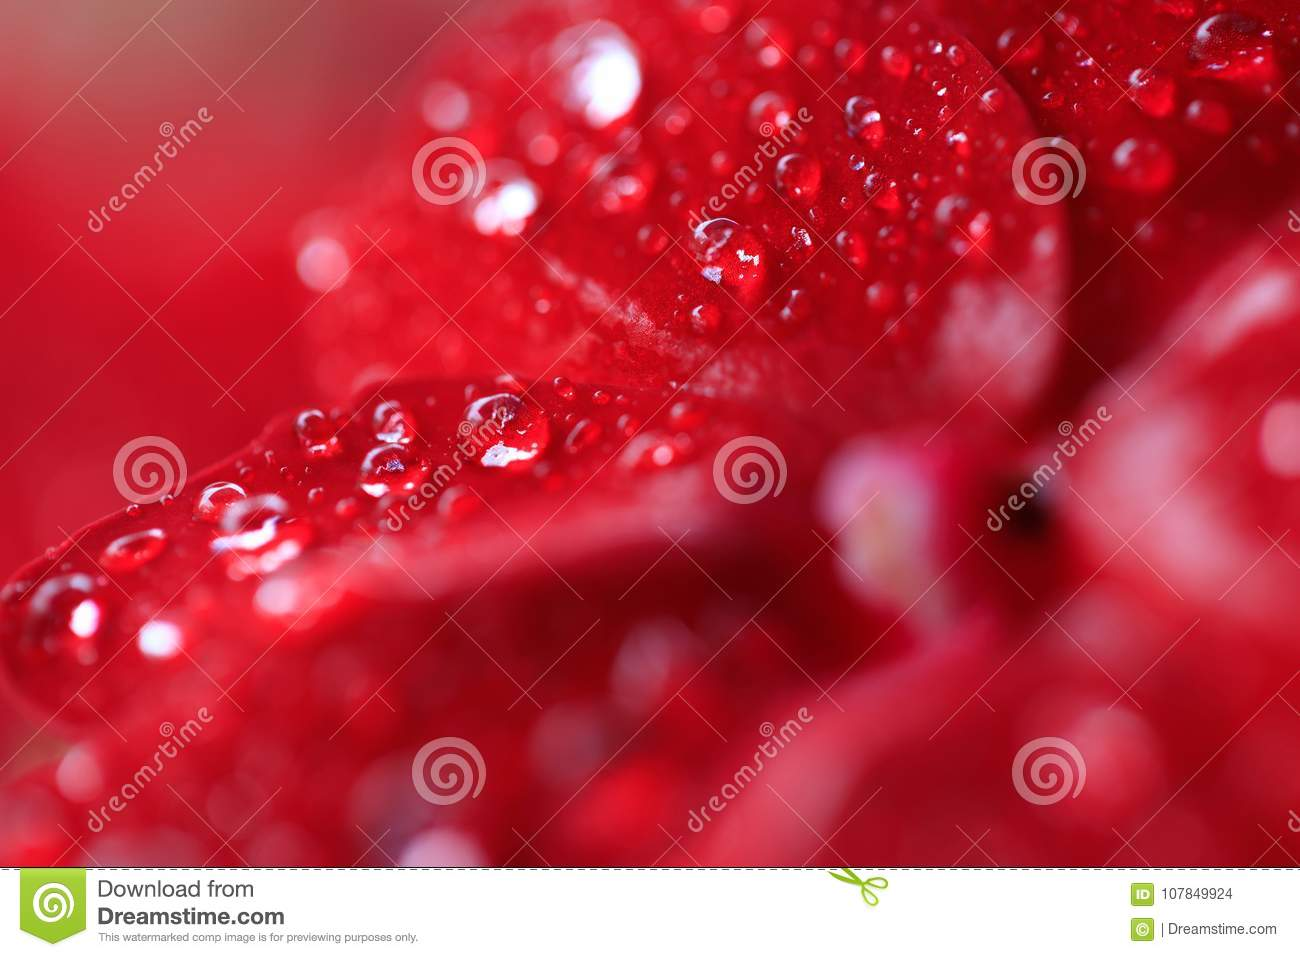 Red Begonia flowers with rain drops. Blurred Begonia background with water drops closeup. Nature. Environment concept. Macro shot.